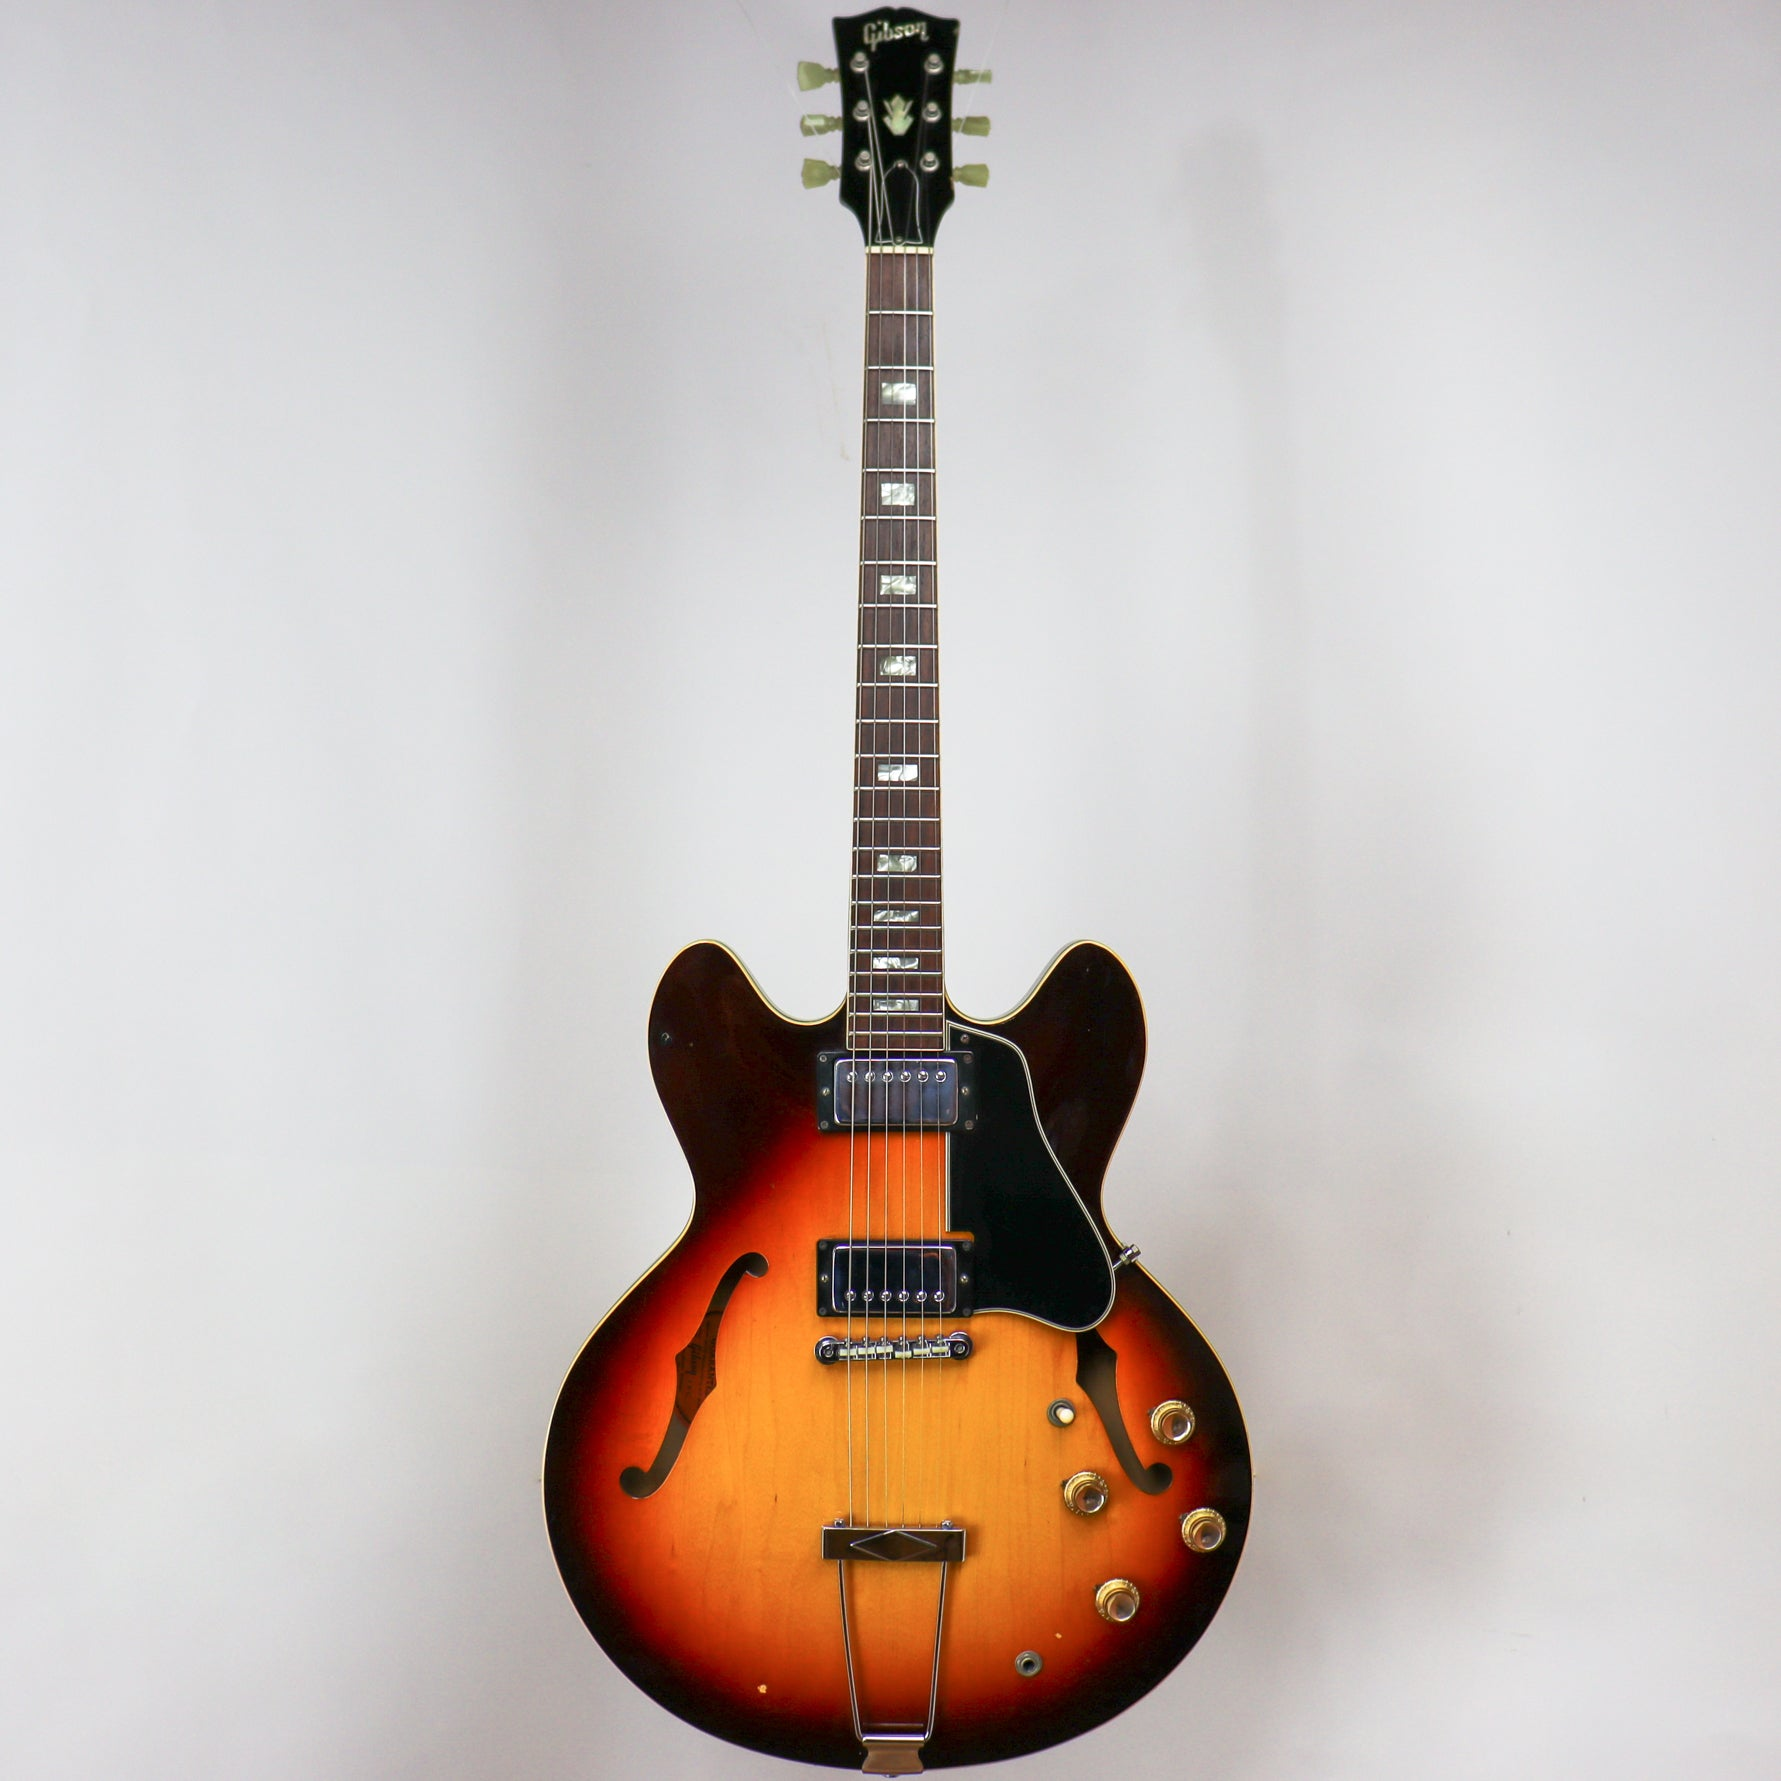 Gibson 1967 ES-335TD Sunburst owned by Eric Johnson 053815 w/OHSC